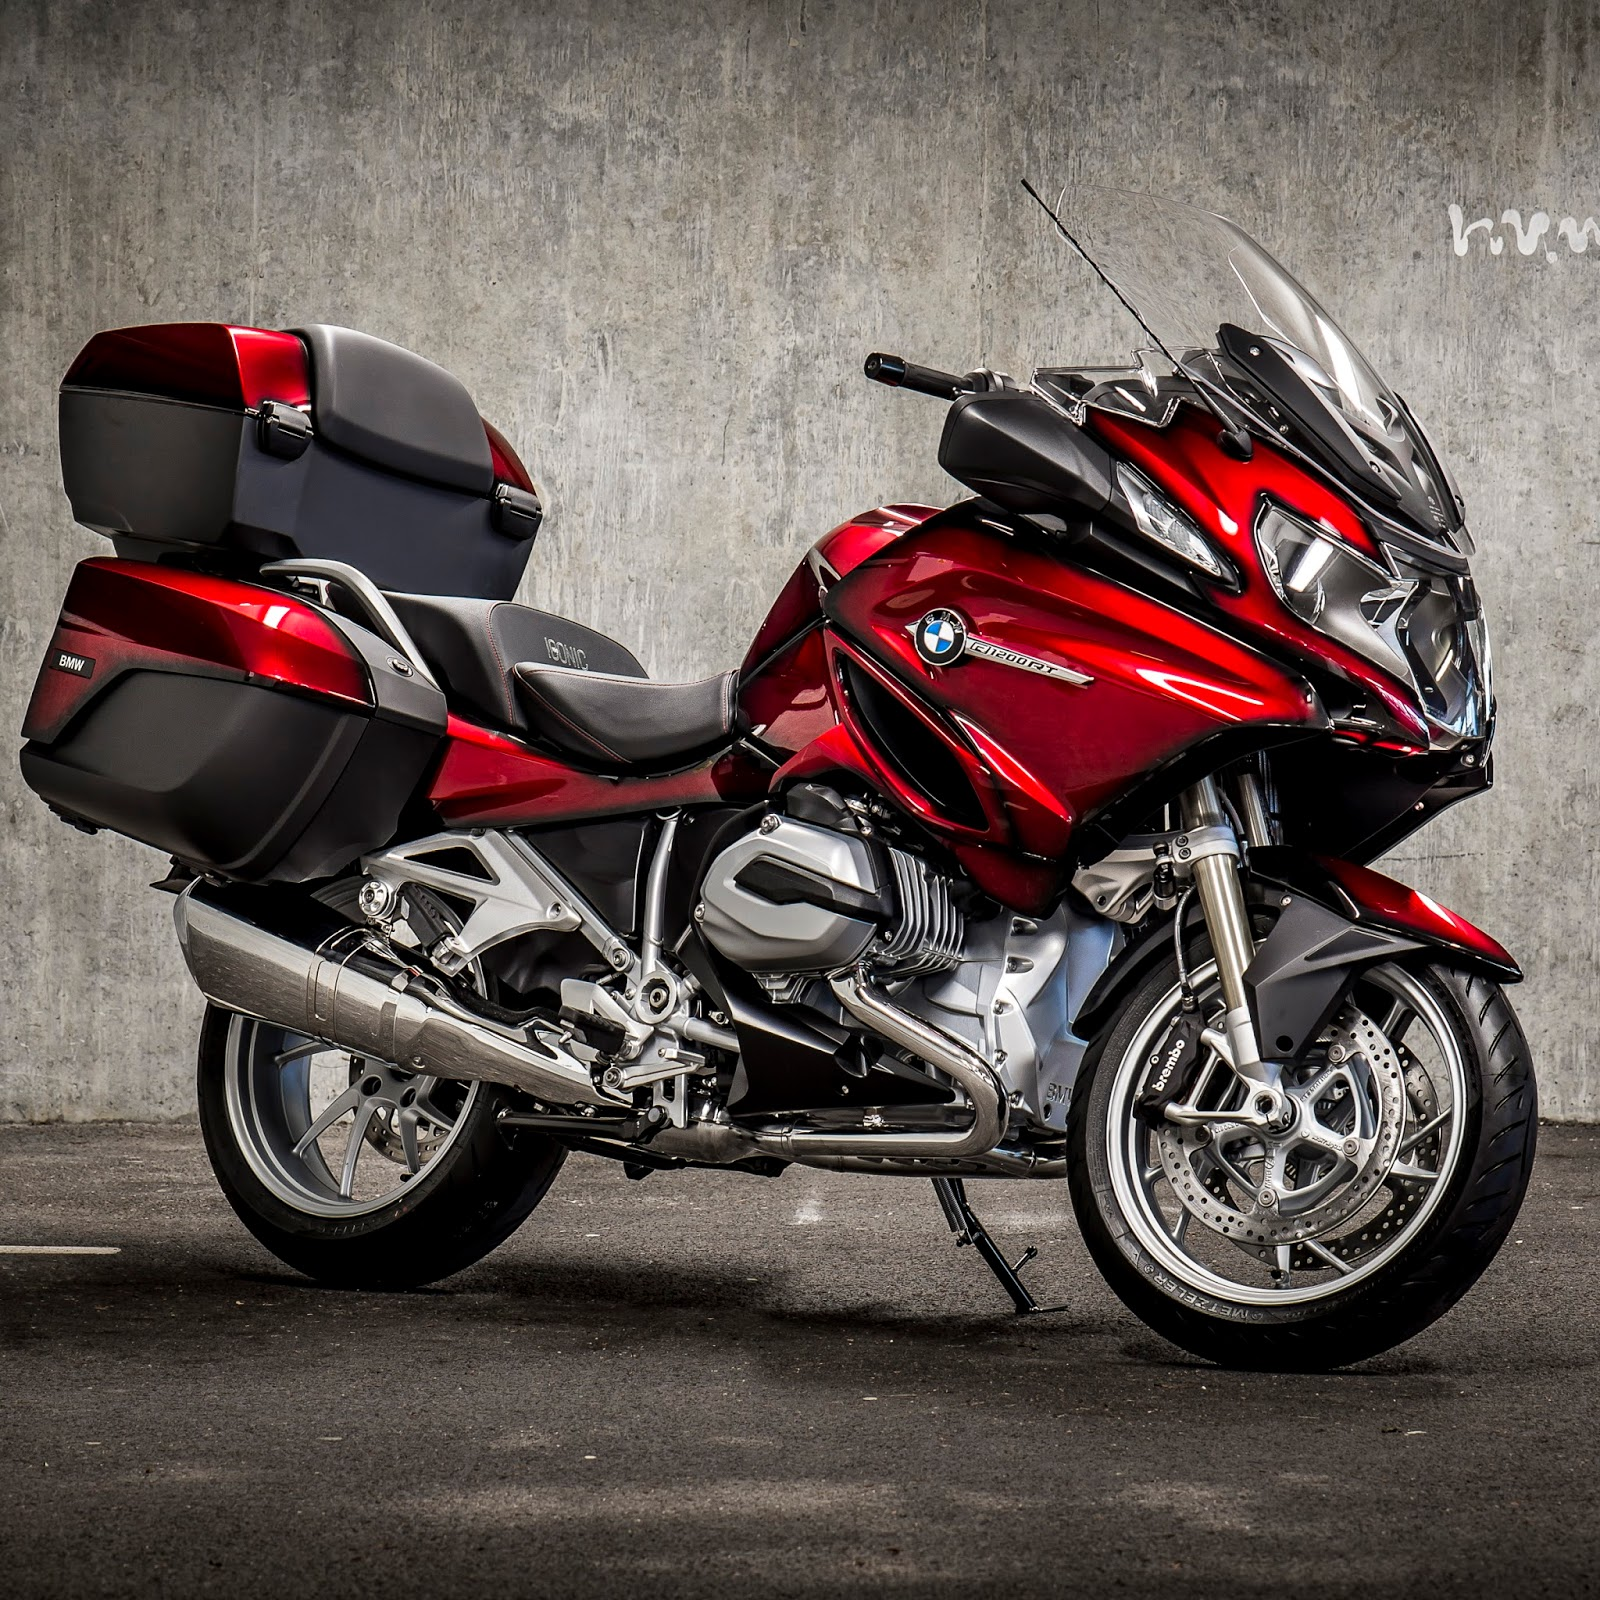 2017 bmw motorcycles bmwsporttouring forums. Black Bedroom Furniture Sets. Home Design Ideas